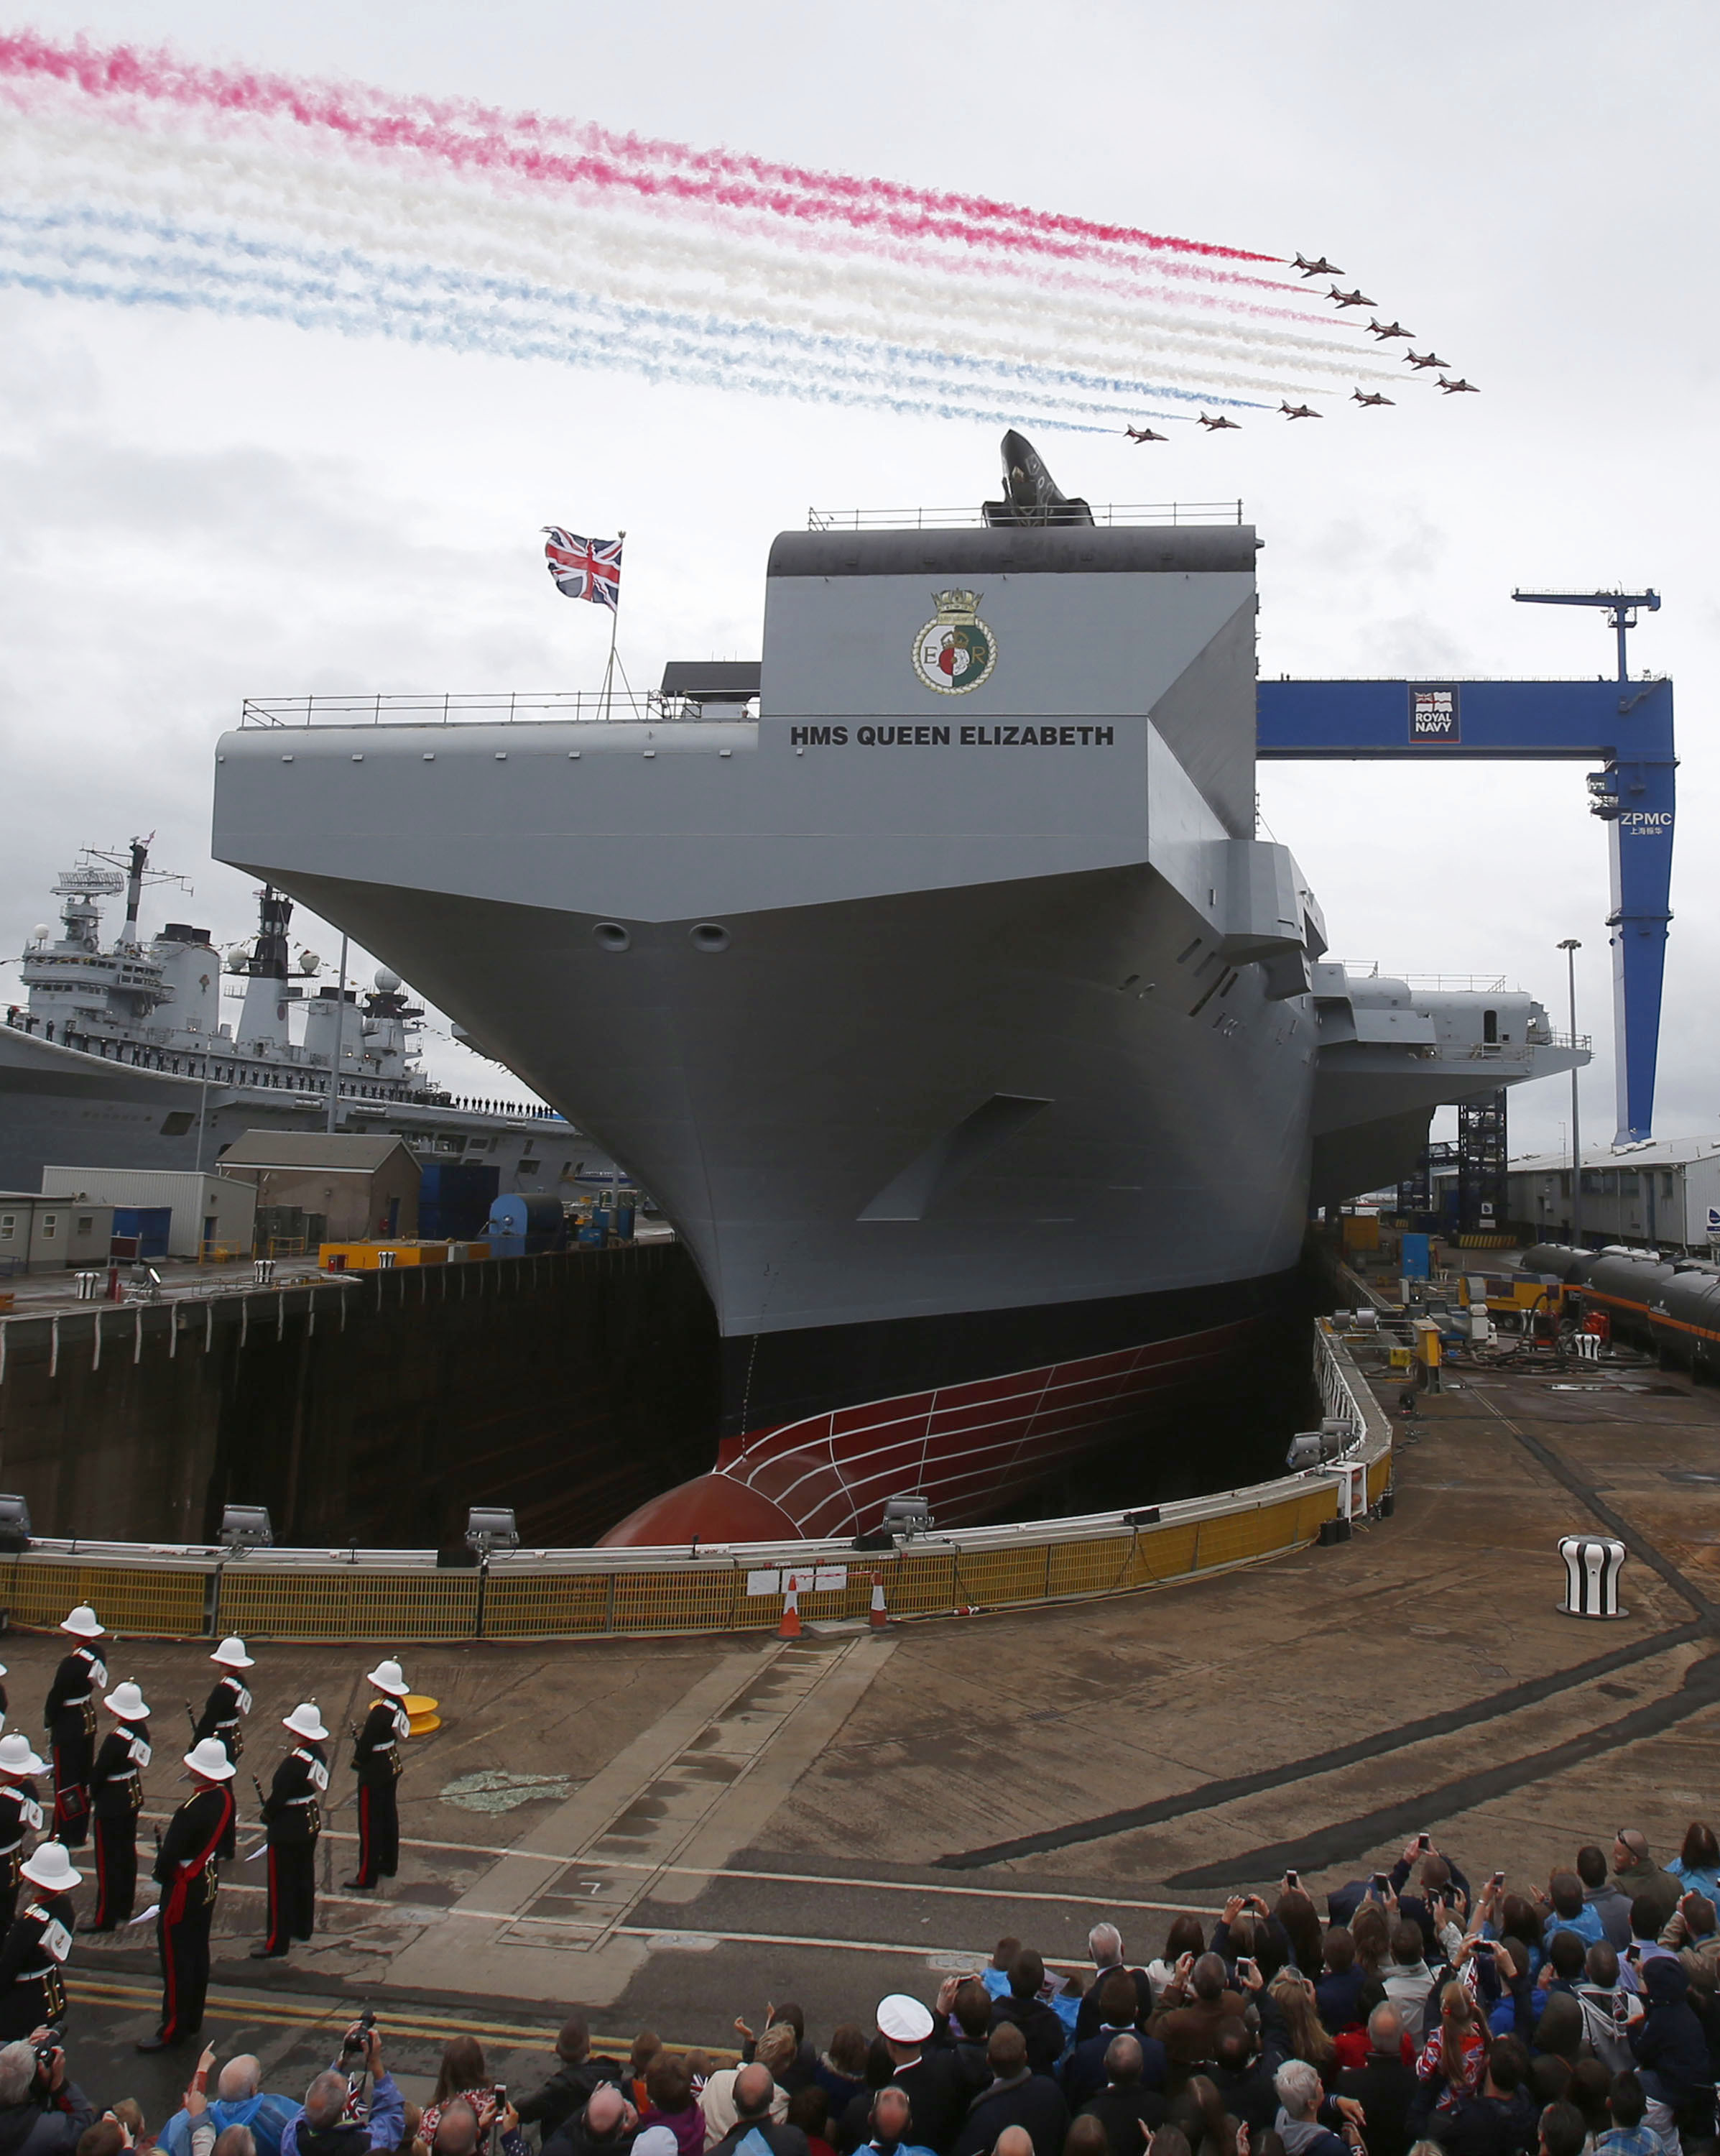 North-East steel builds UK's largest warship